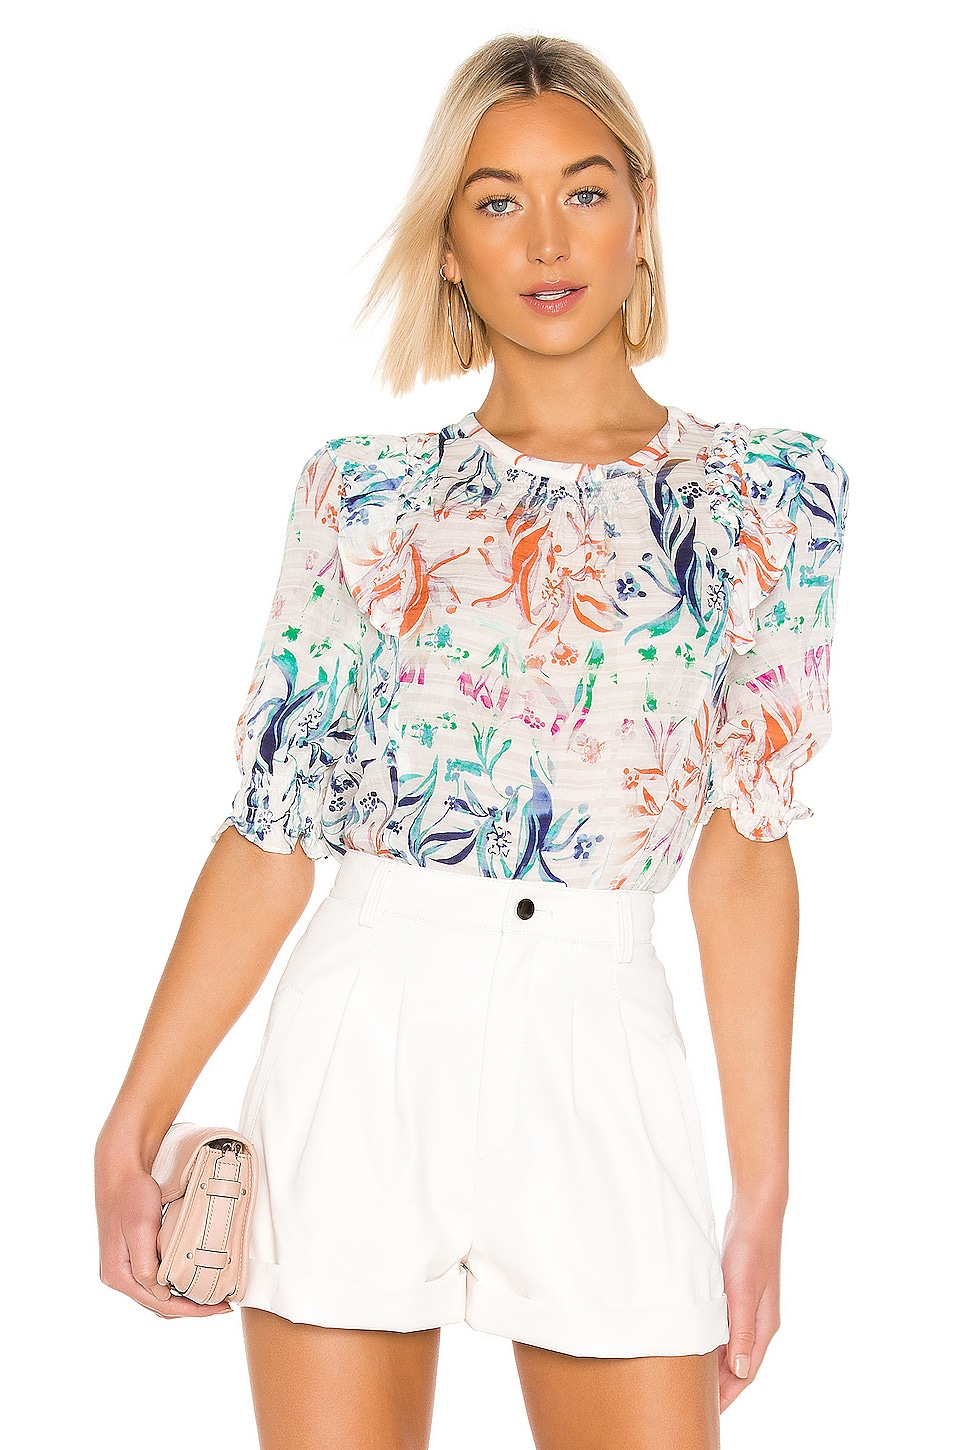 Tanya Taylor Martha Top In Botanical Floral White